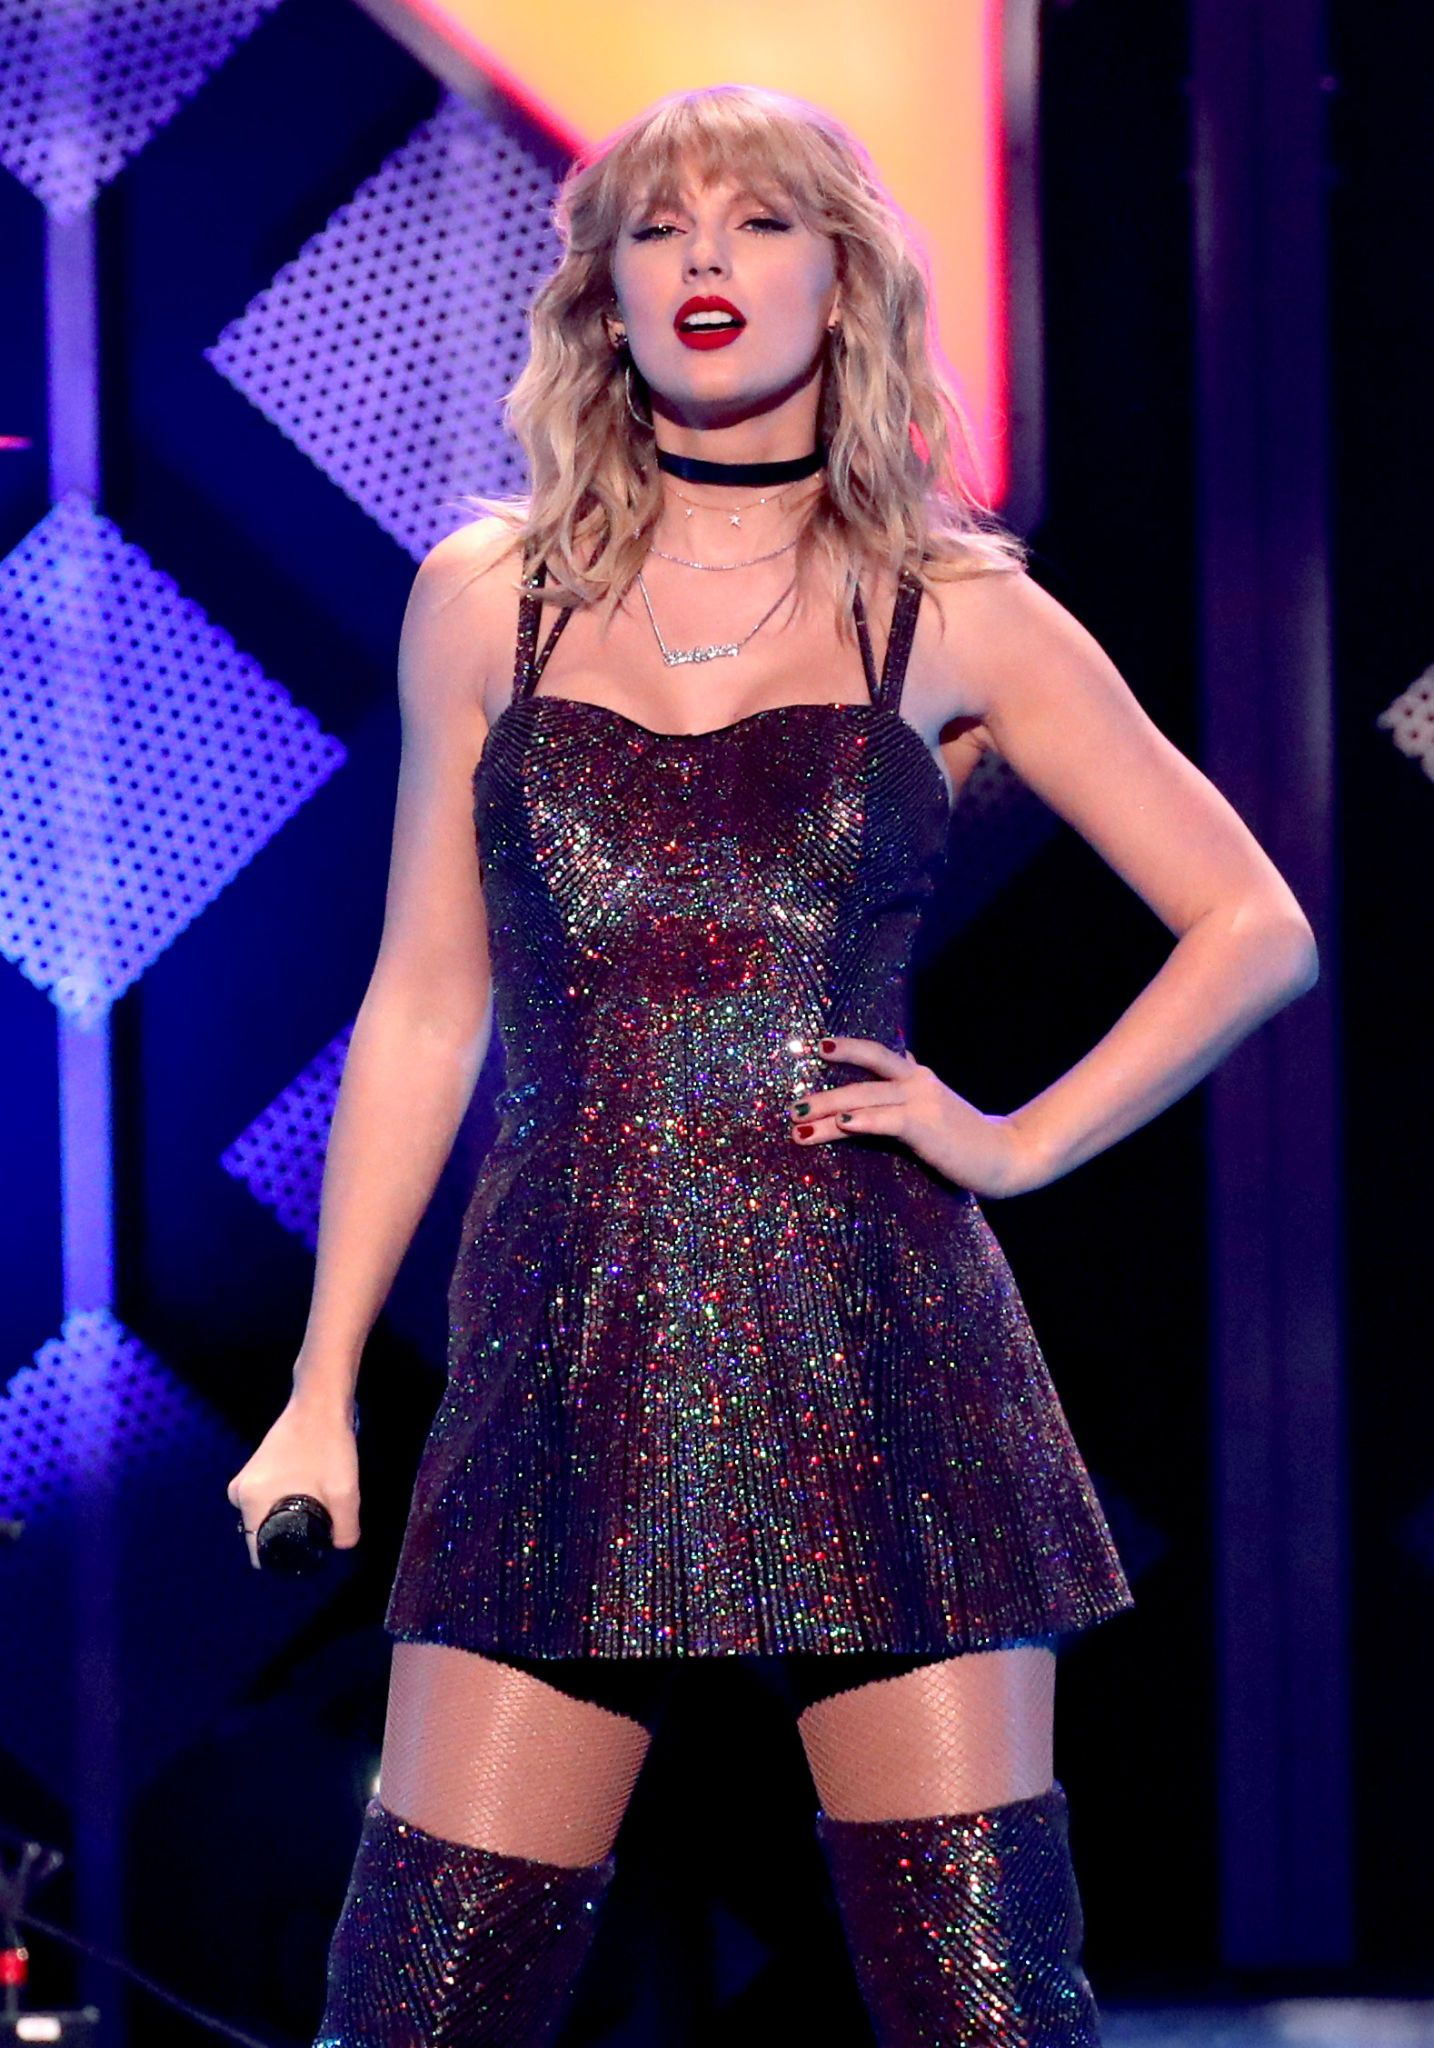 Pin by Philip Medelson on Taylor Swift Taylor swift hot